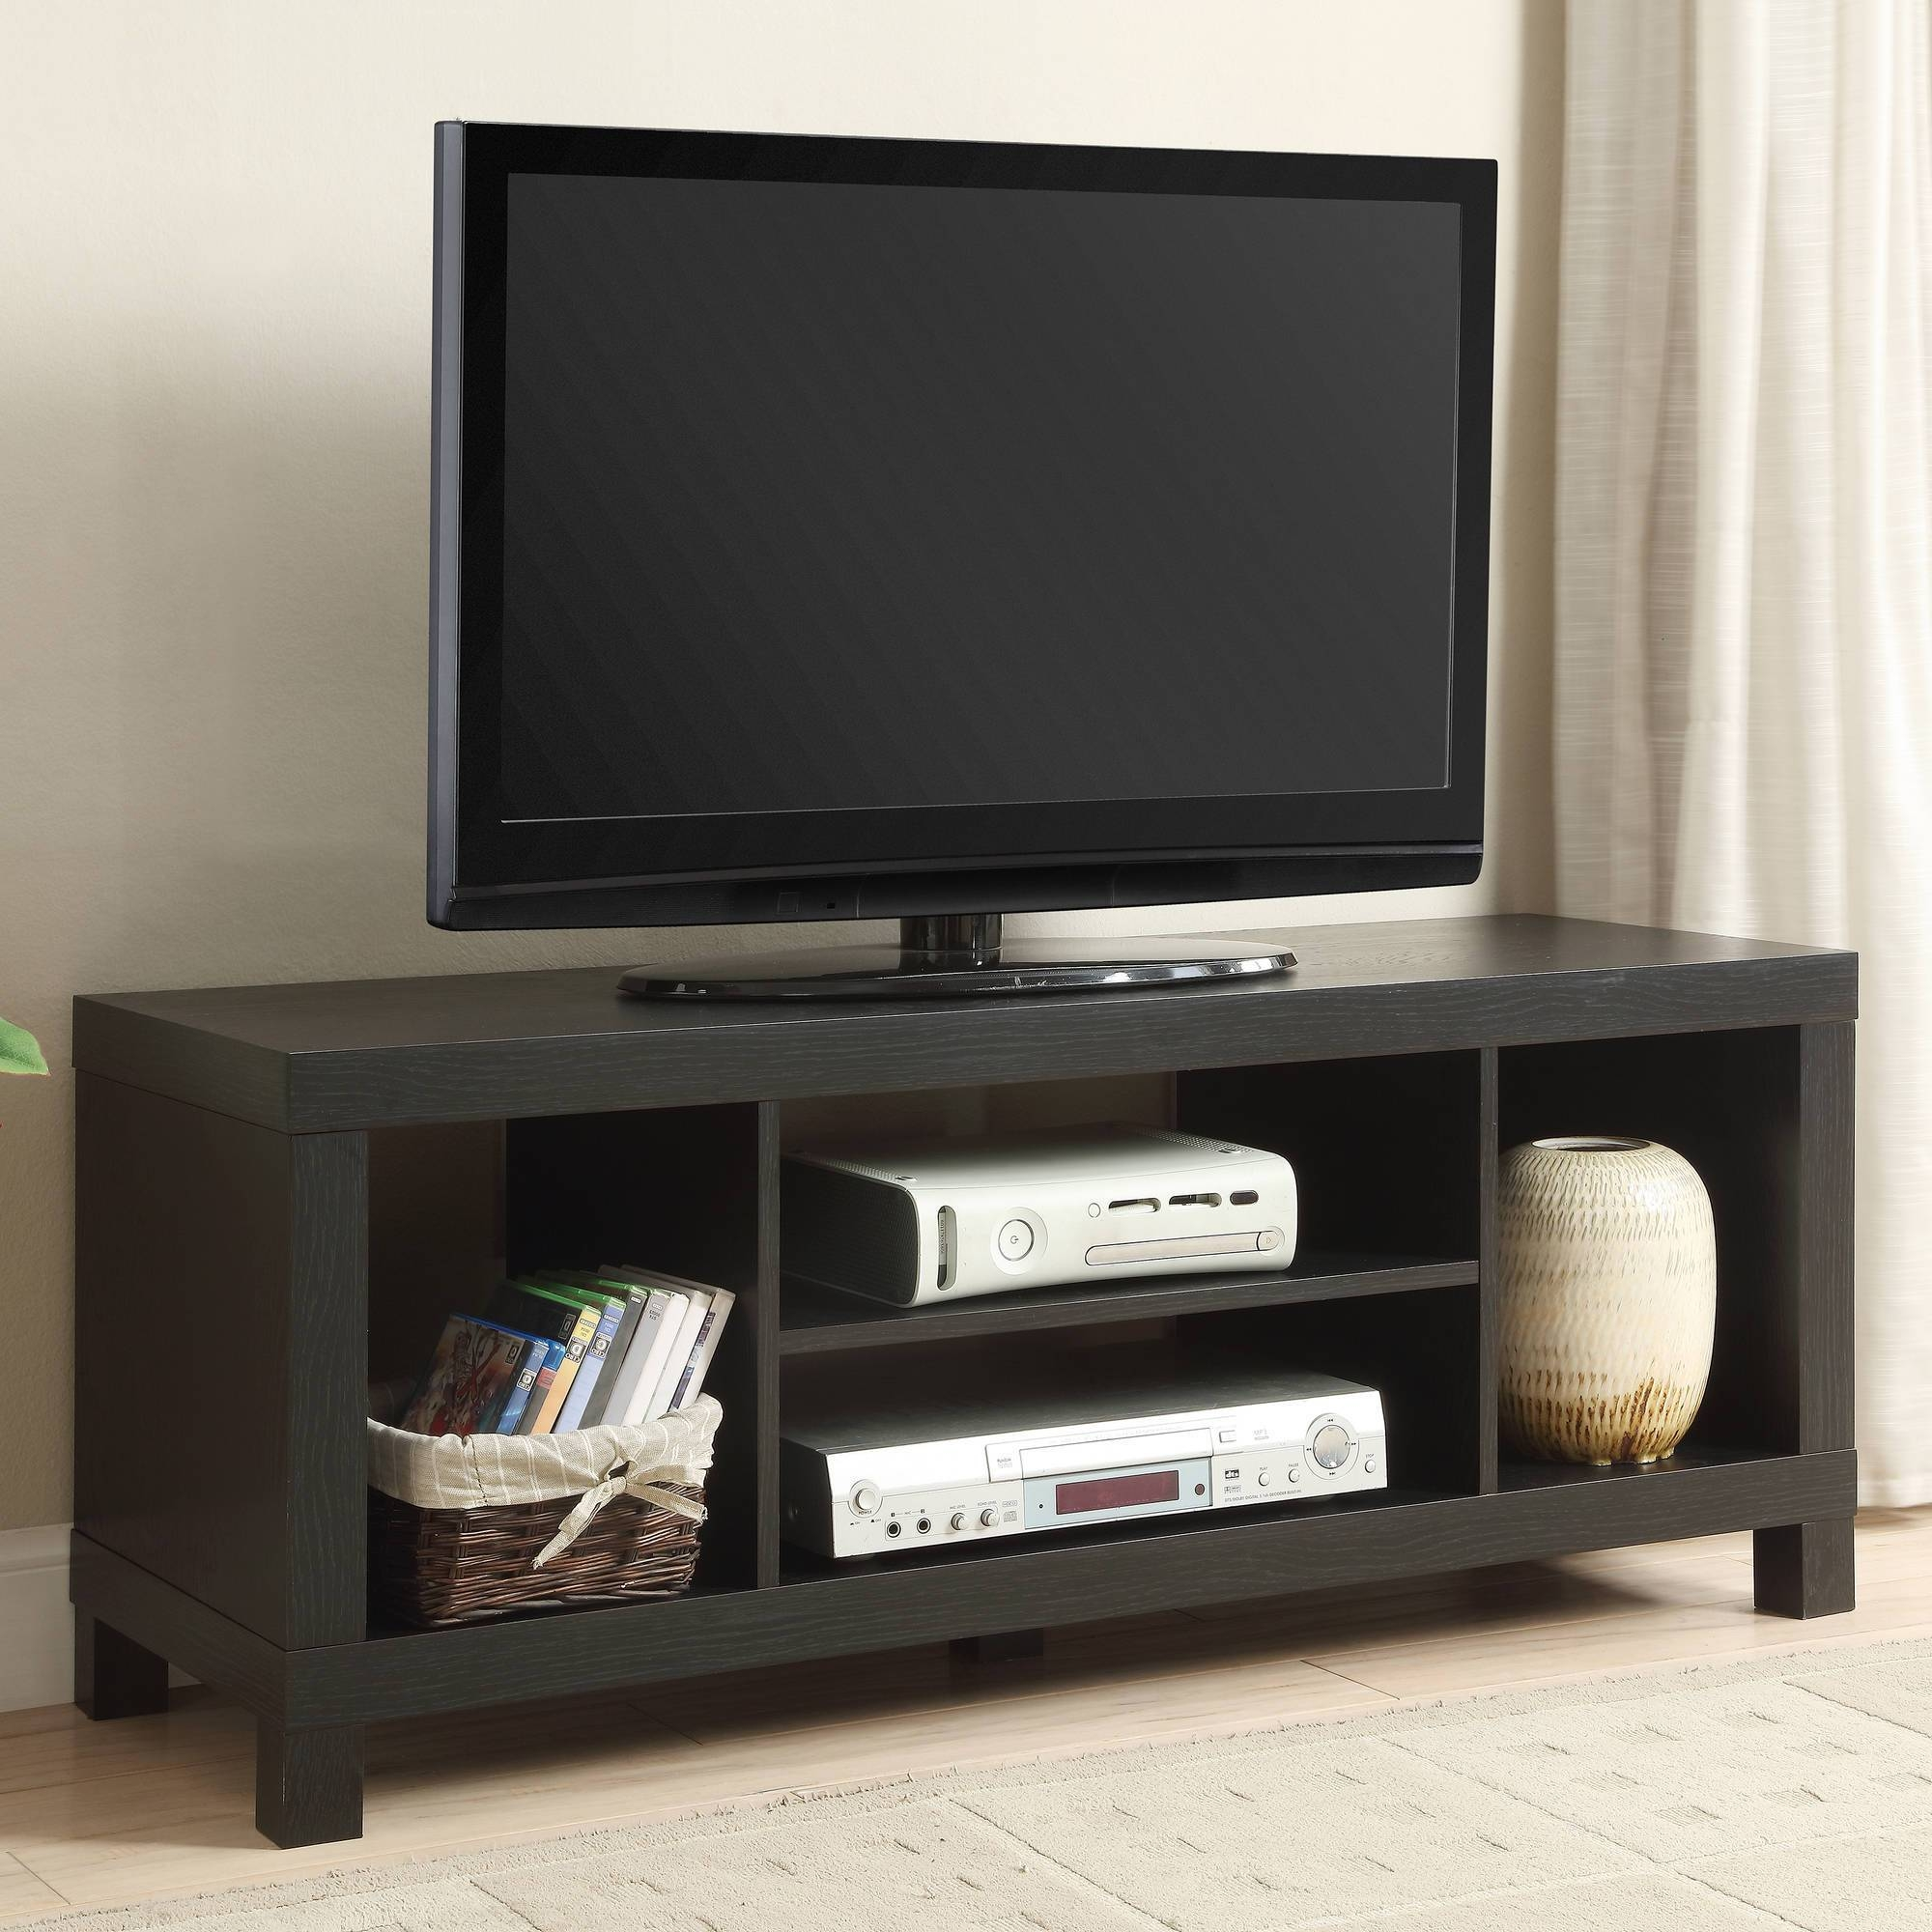 Tv Stands - Walmart with Emerson Tv Stands (Image 15 of 15)